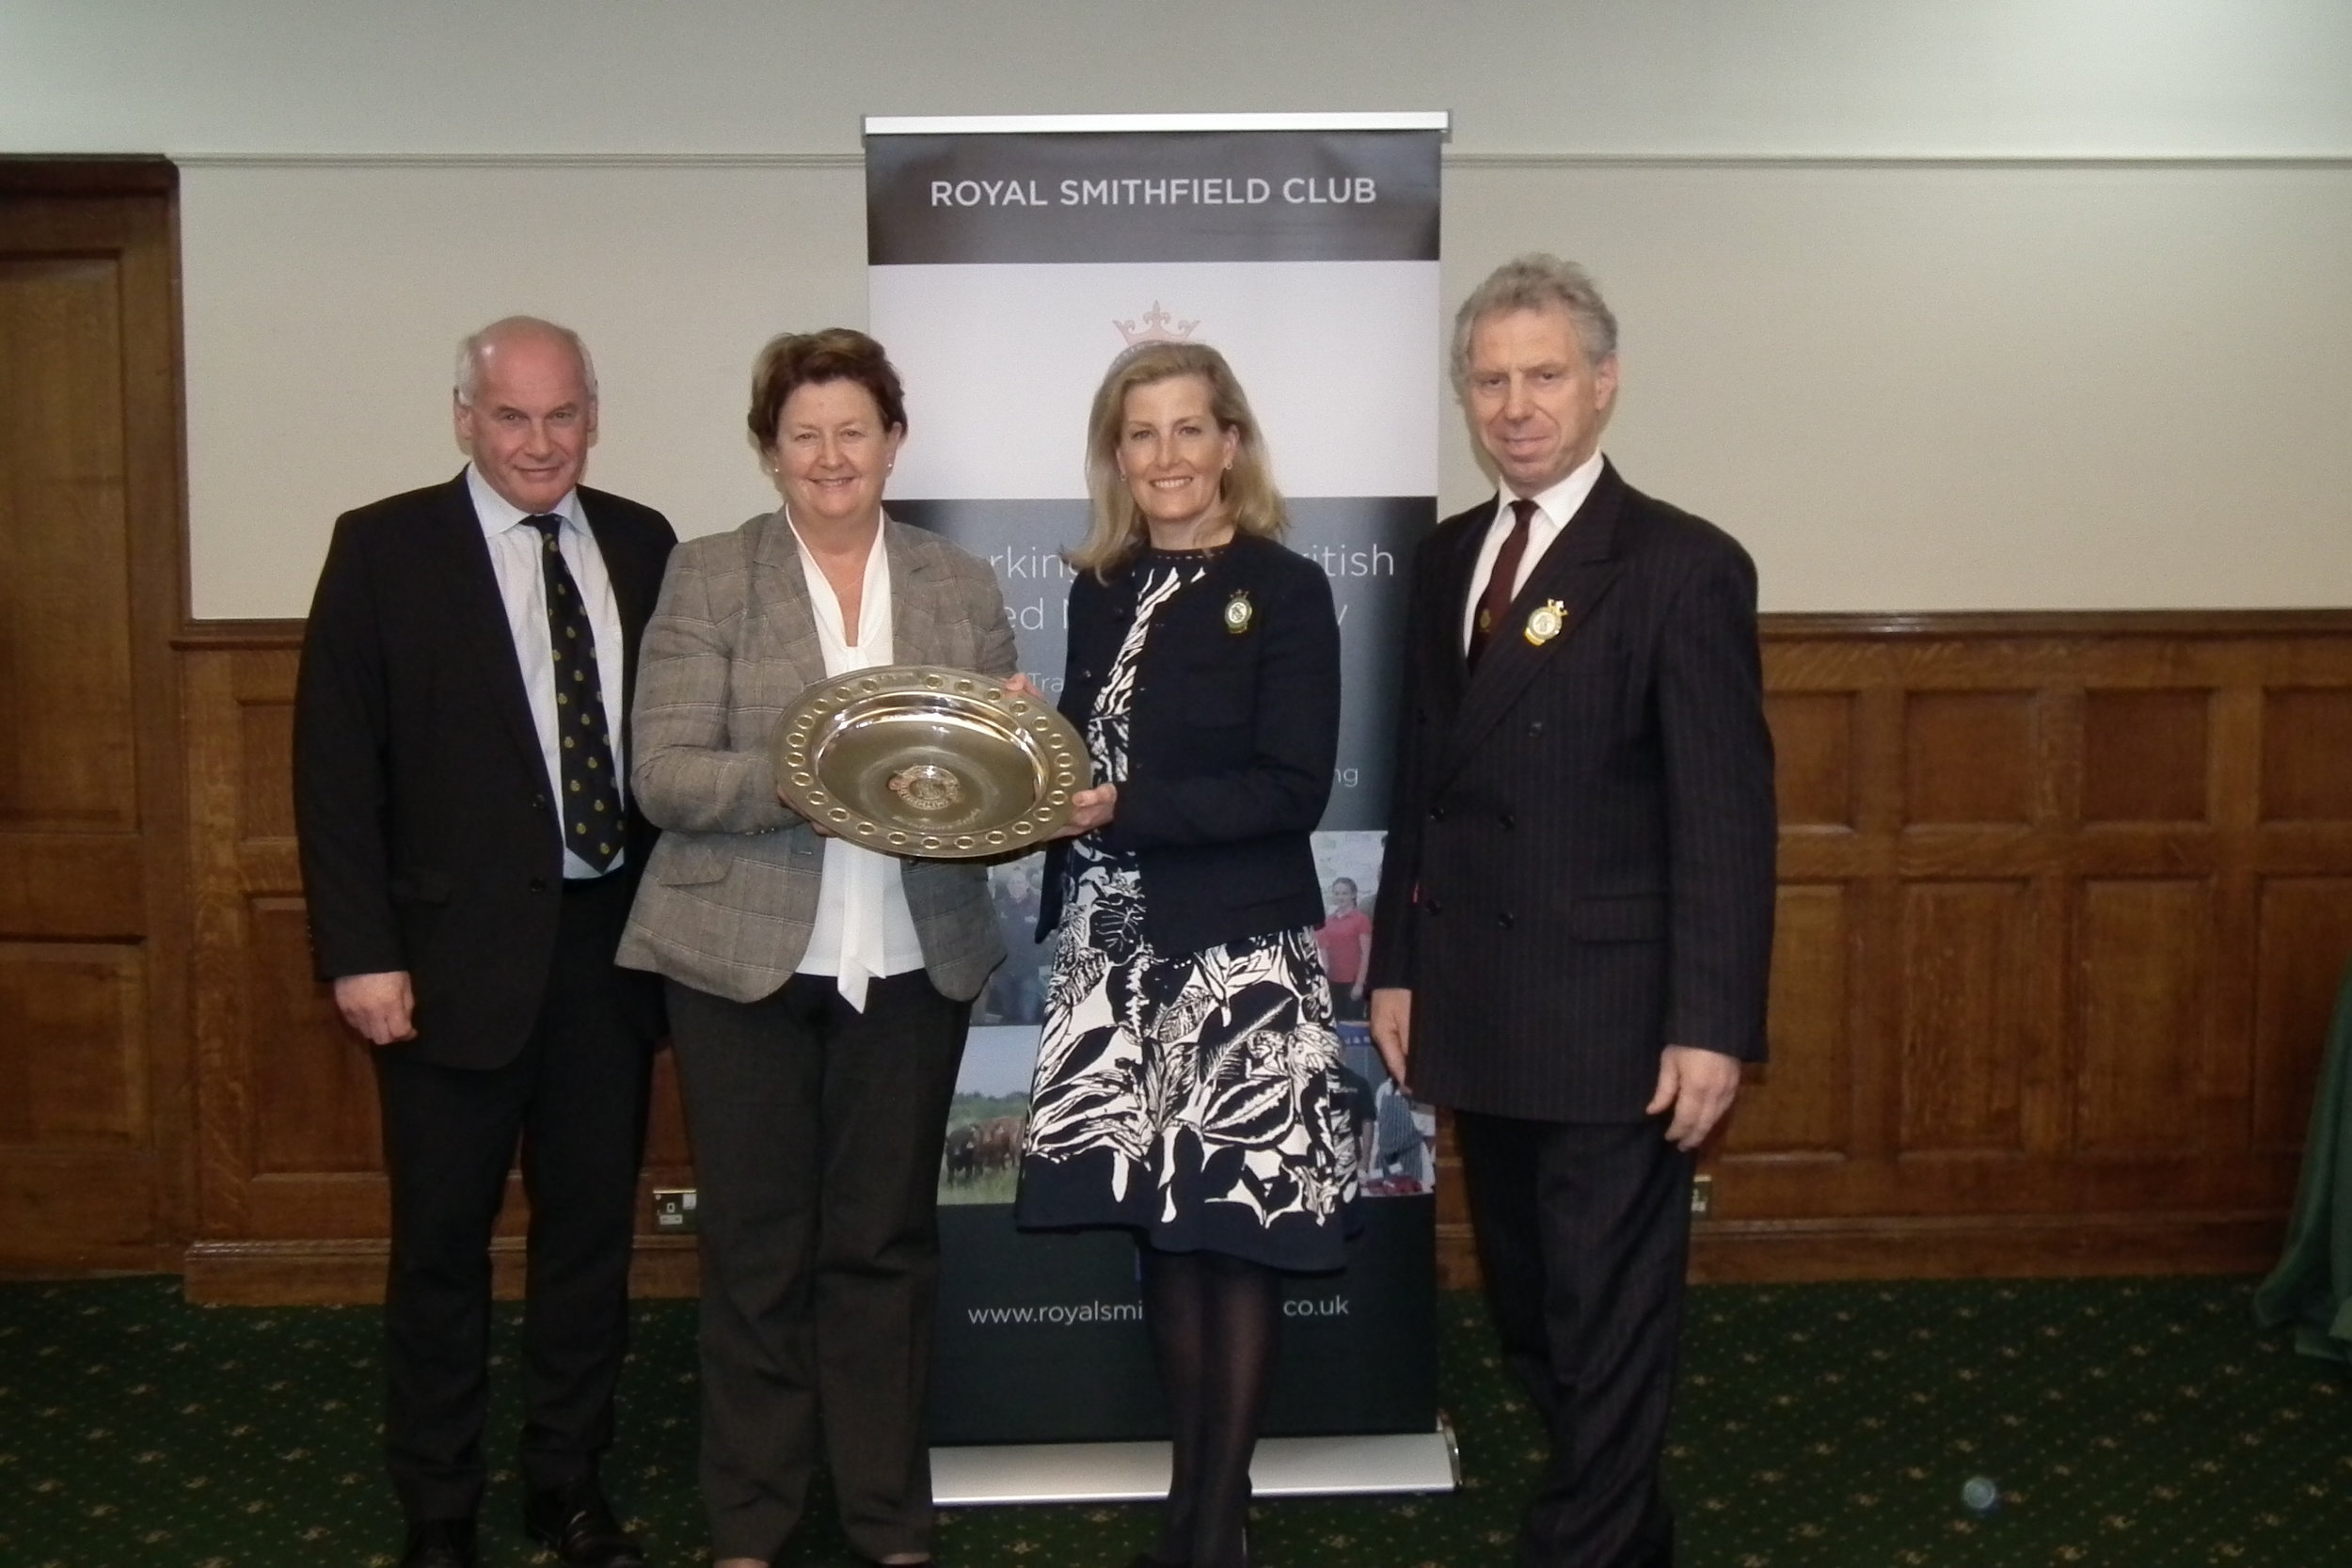 Her Royal Highness The Countess of Wessex presenting the Royal Smithfield Bicentenary Trophy to the 2018/19 winner Mrs Heather Jenkins in recognition of her major contribution to the British livestock industry over the past thirty years. Pictured (far left) is David Gunner, Joint Chief Executive Dovecote Park Ltd and (far right) William Bedell, Chairman Royal Smithfield Club